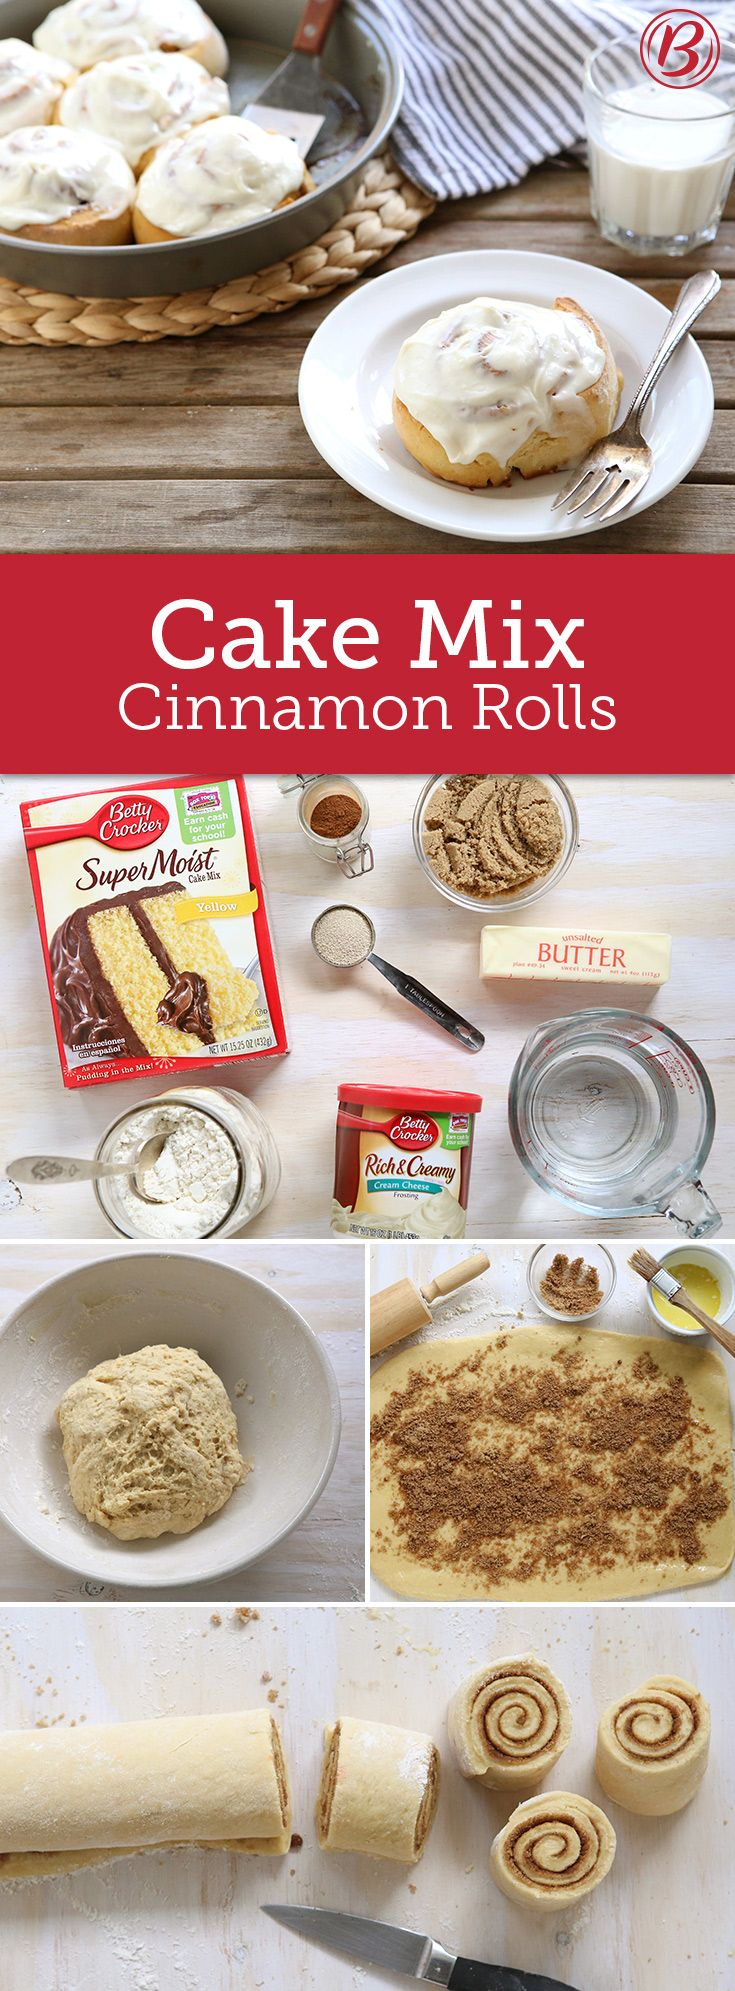 Who can resist homemade cinnamon rolls? This easy-to-make recipe comes together in a snap thanks to Betty Crocker cake mix and frosting. Homemade taste and shortcut convenience!